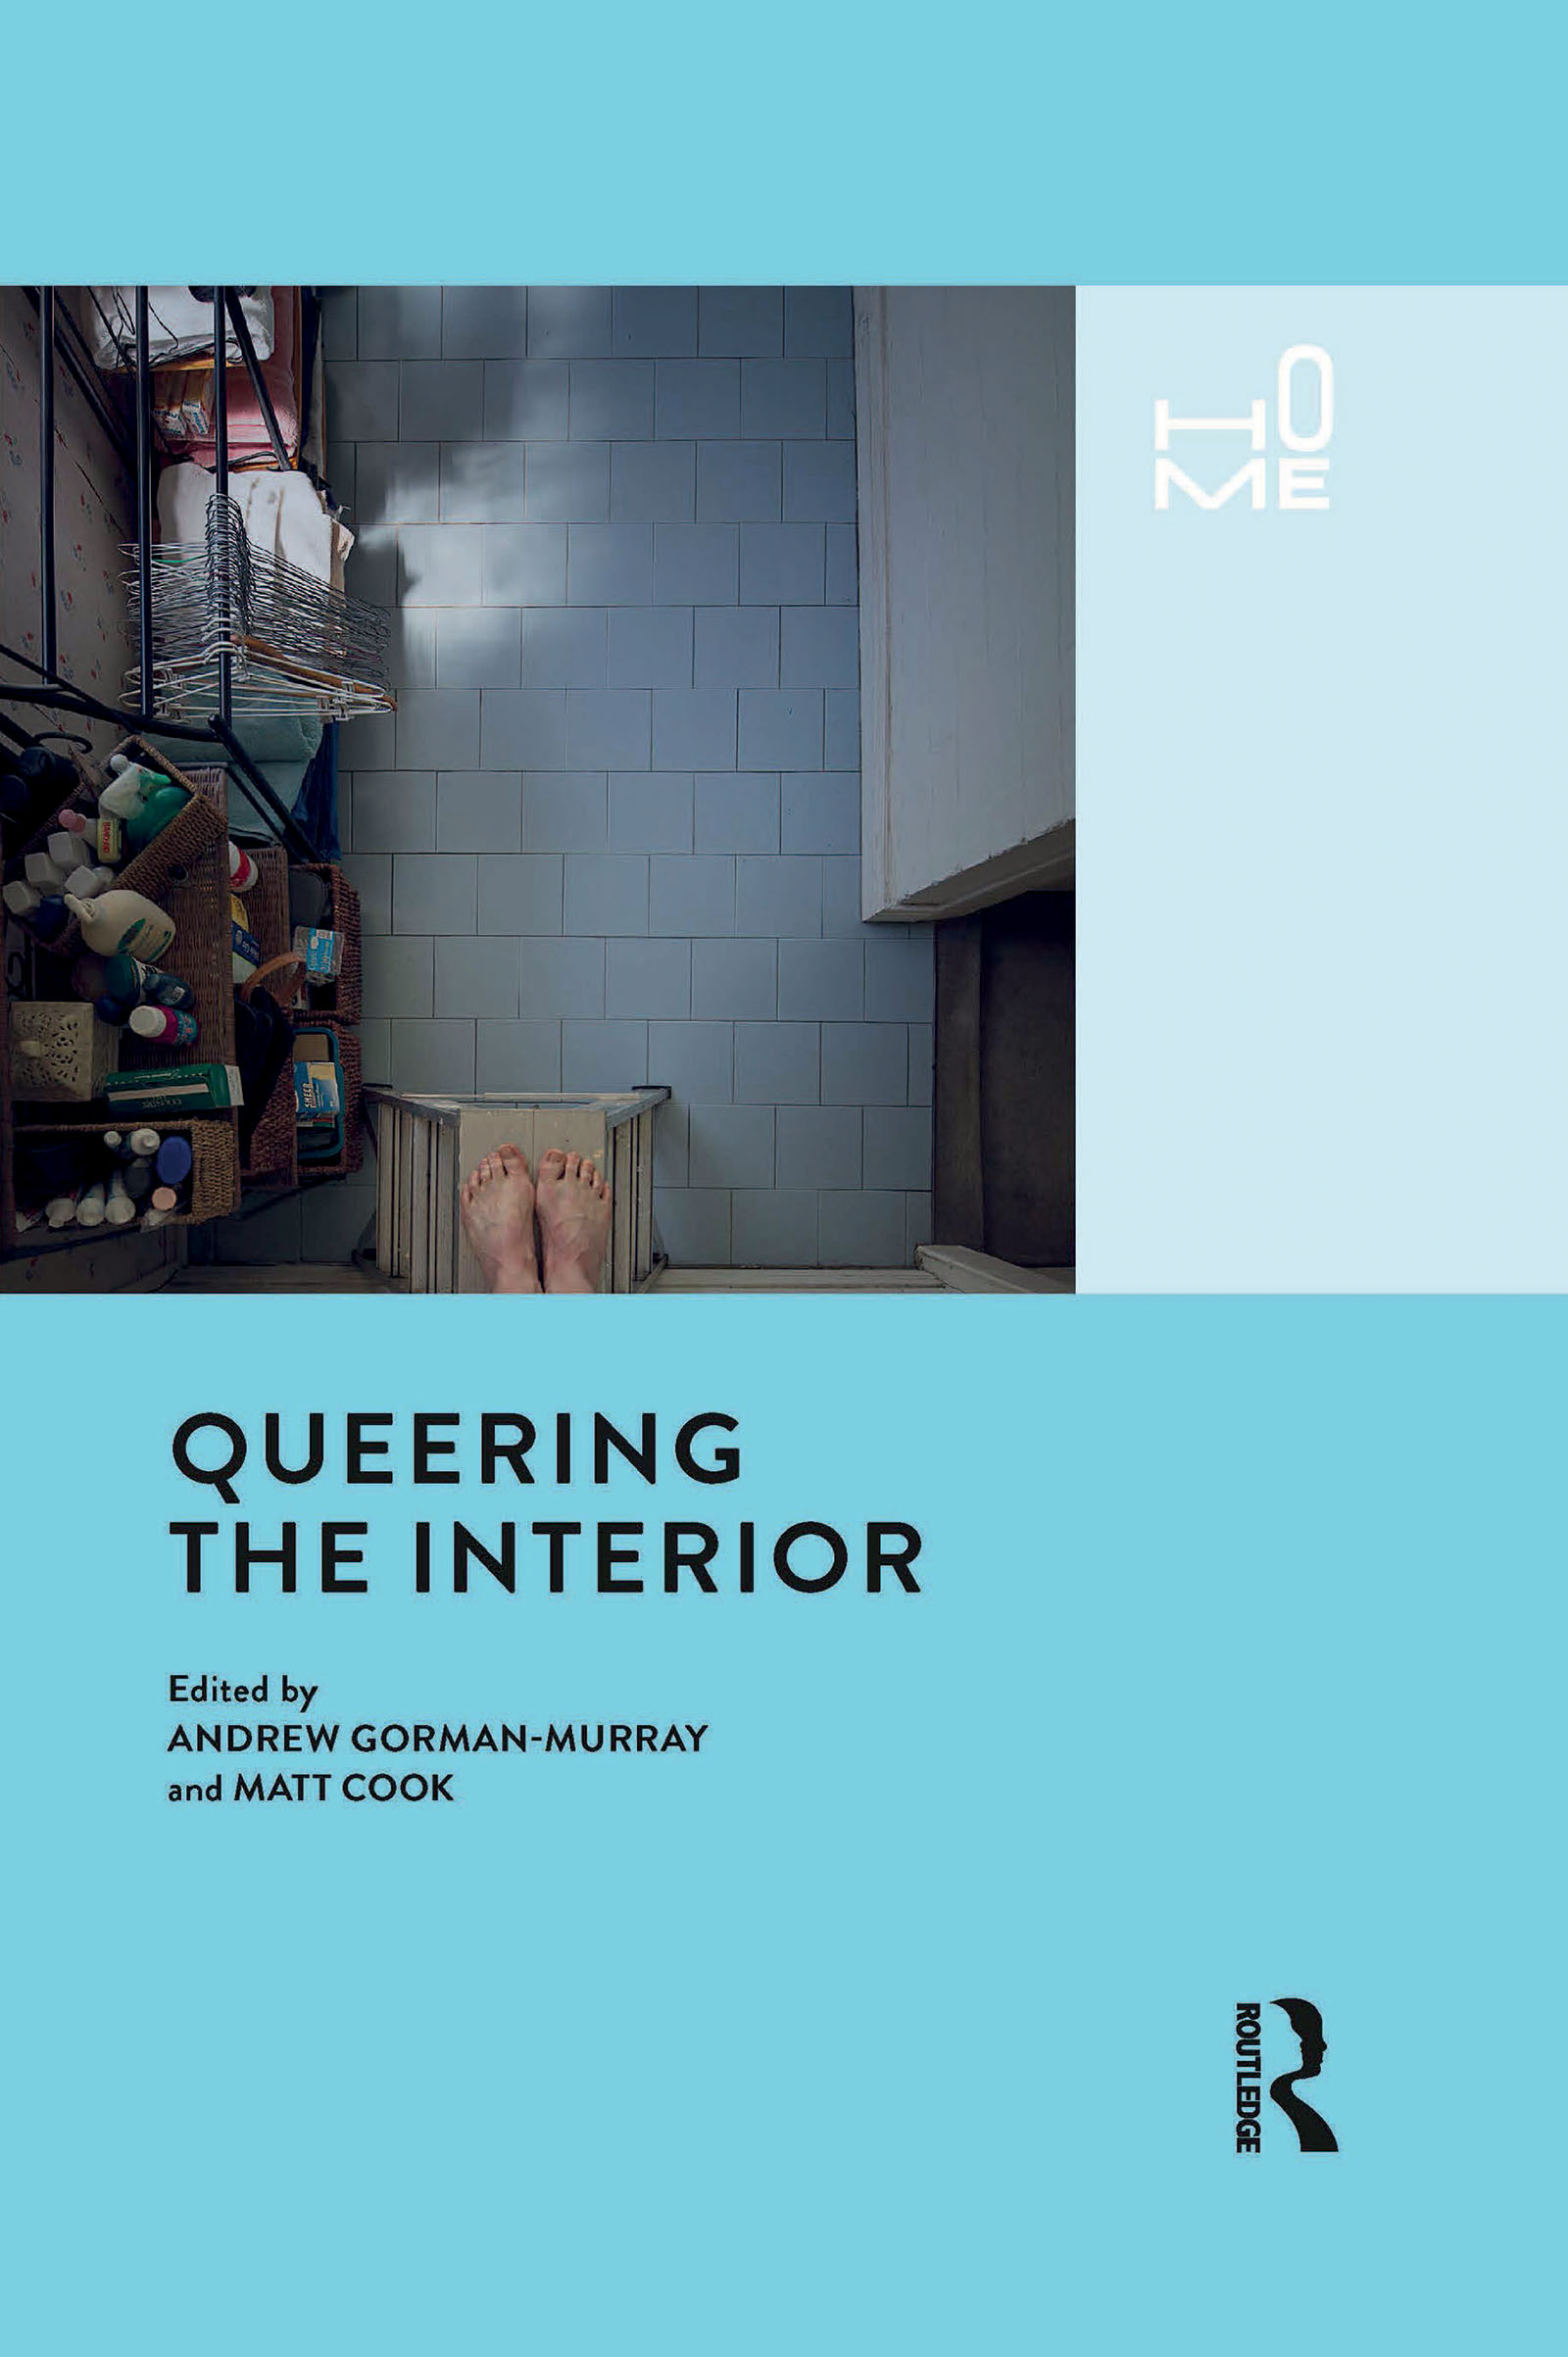 Beyond Kitchen Walls: Queering Domestic Place through Memory and Storytelling